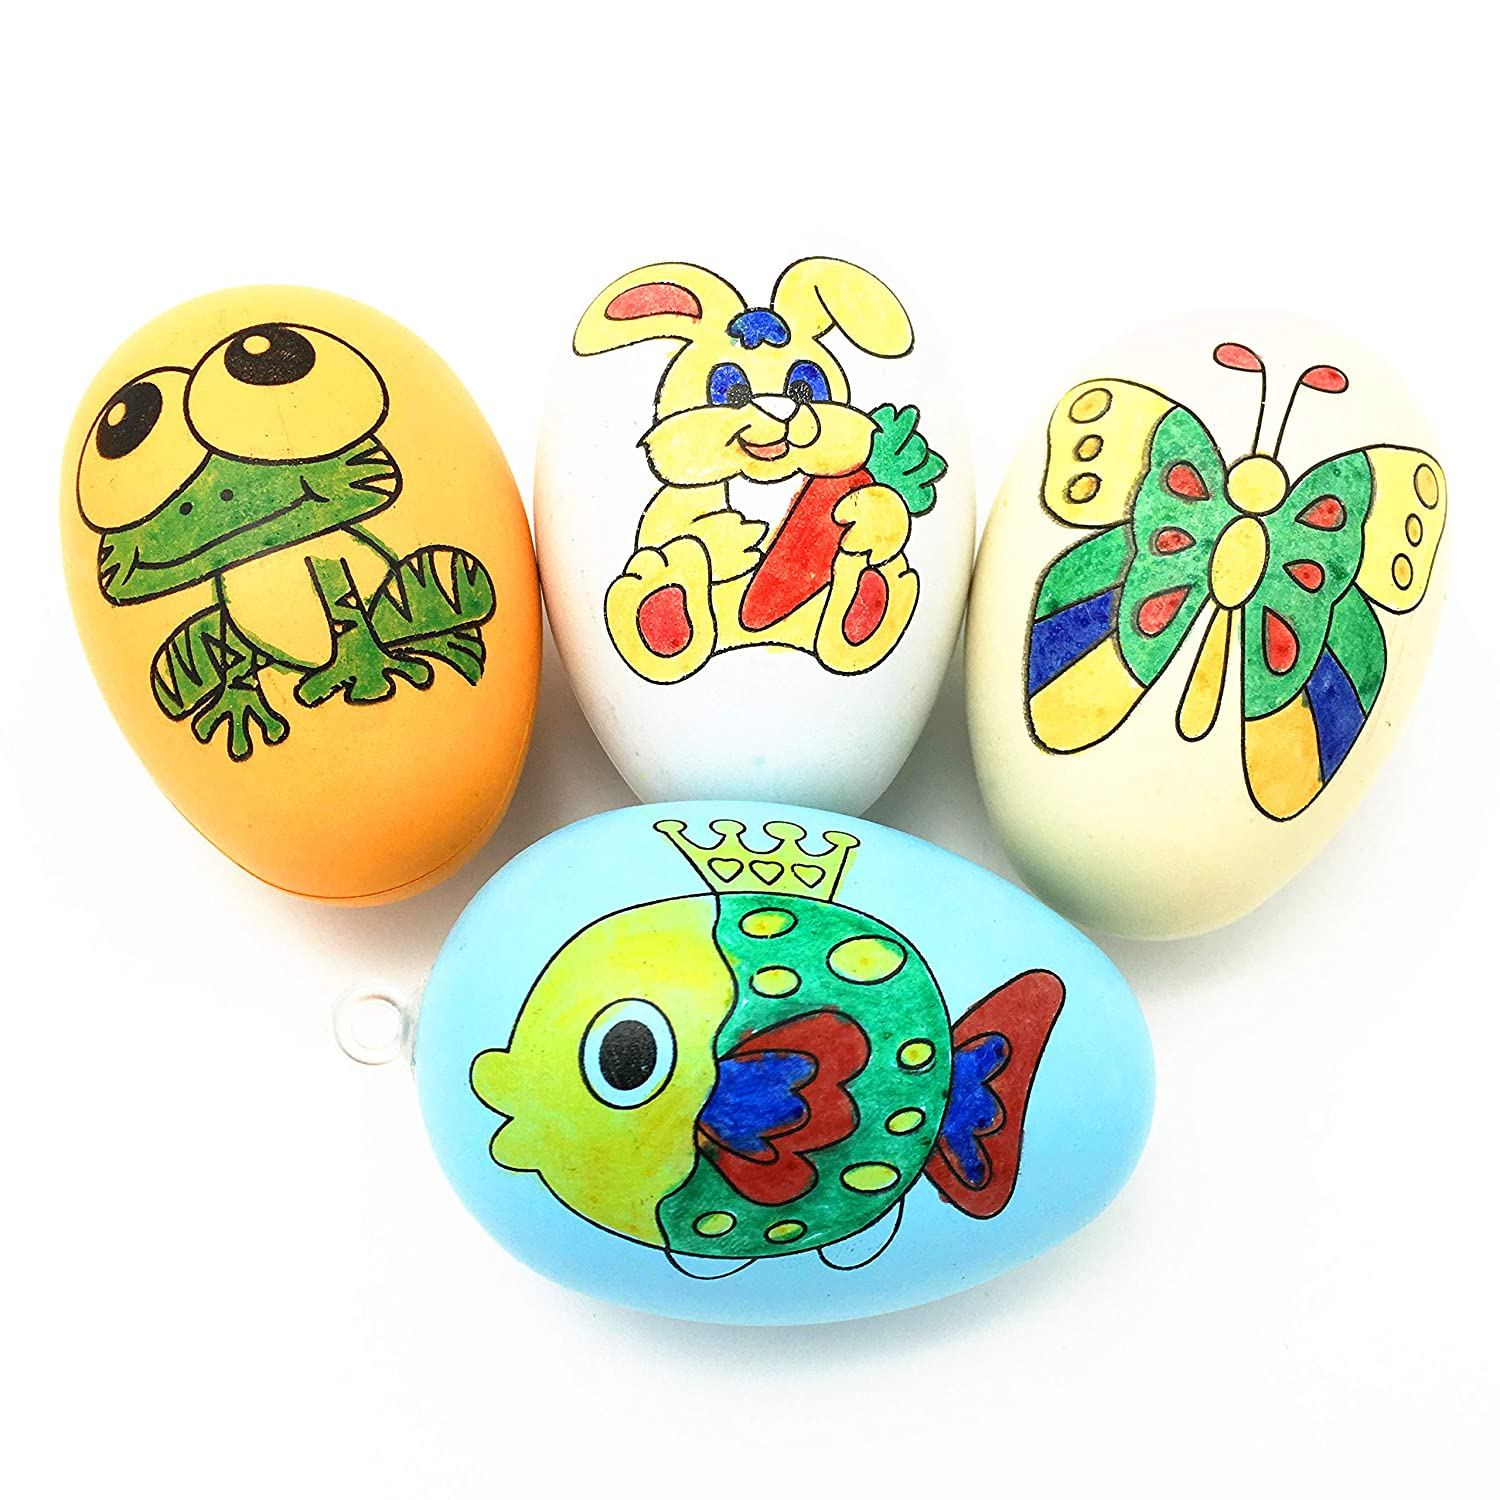 Kids Game Favors Colorful Easter Eggs Plastic Bulk Easter Hunt Decorative Easter Home Decor DIY Eggs Double Side Painting 20 Artificial Easter Egg with 4 Pens